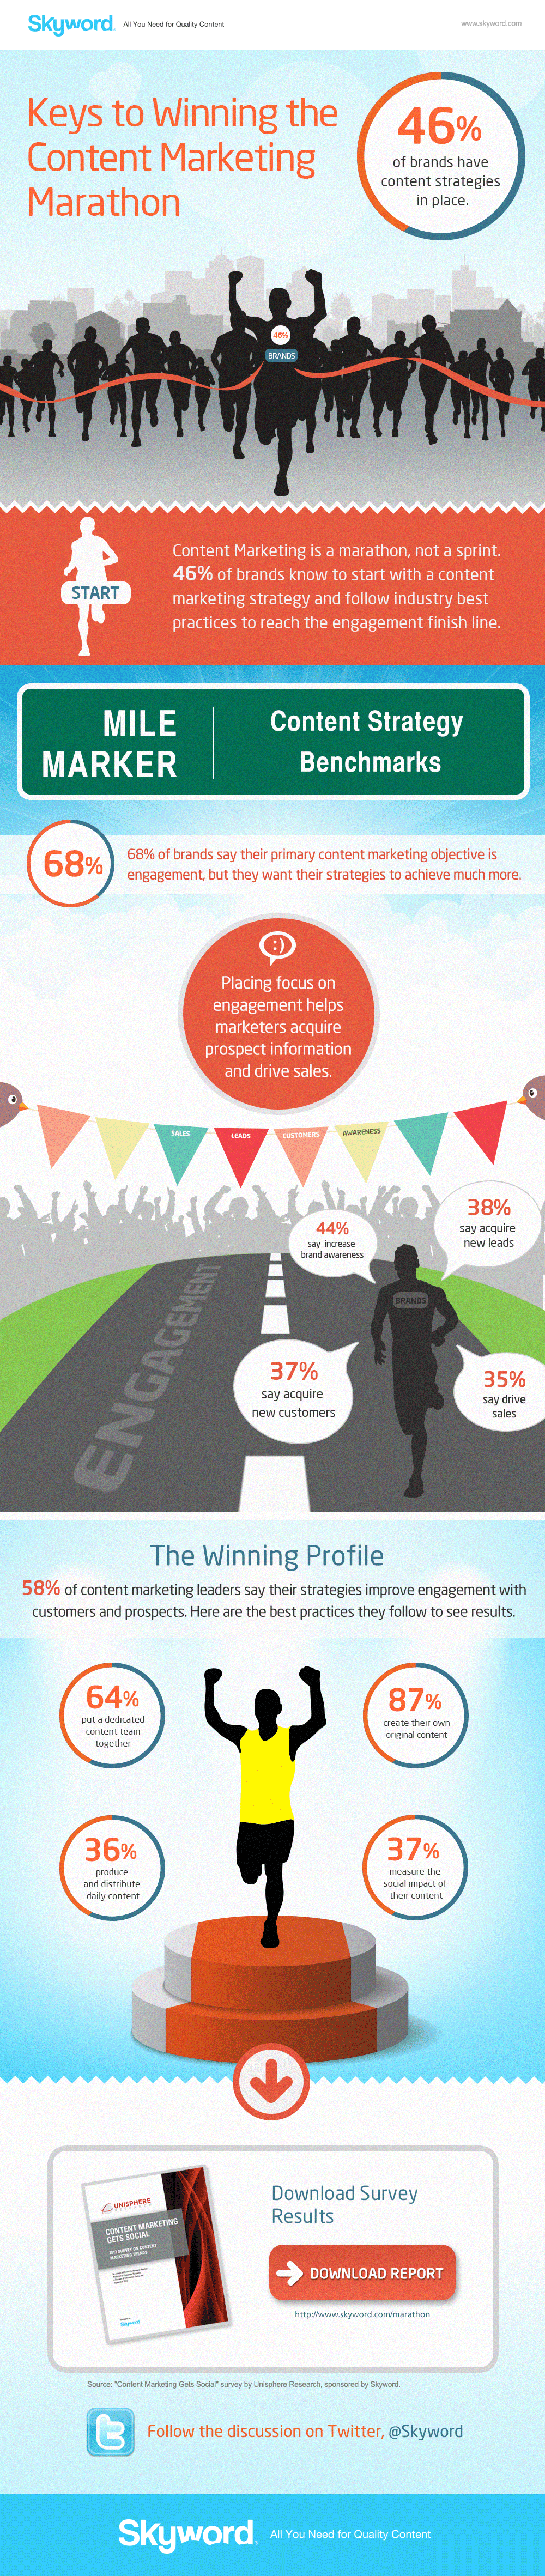 Keys to Winning the Content Marketing Marathon nfographic